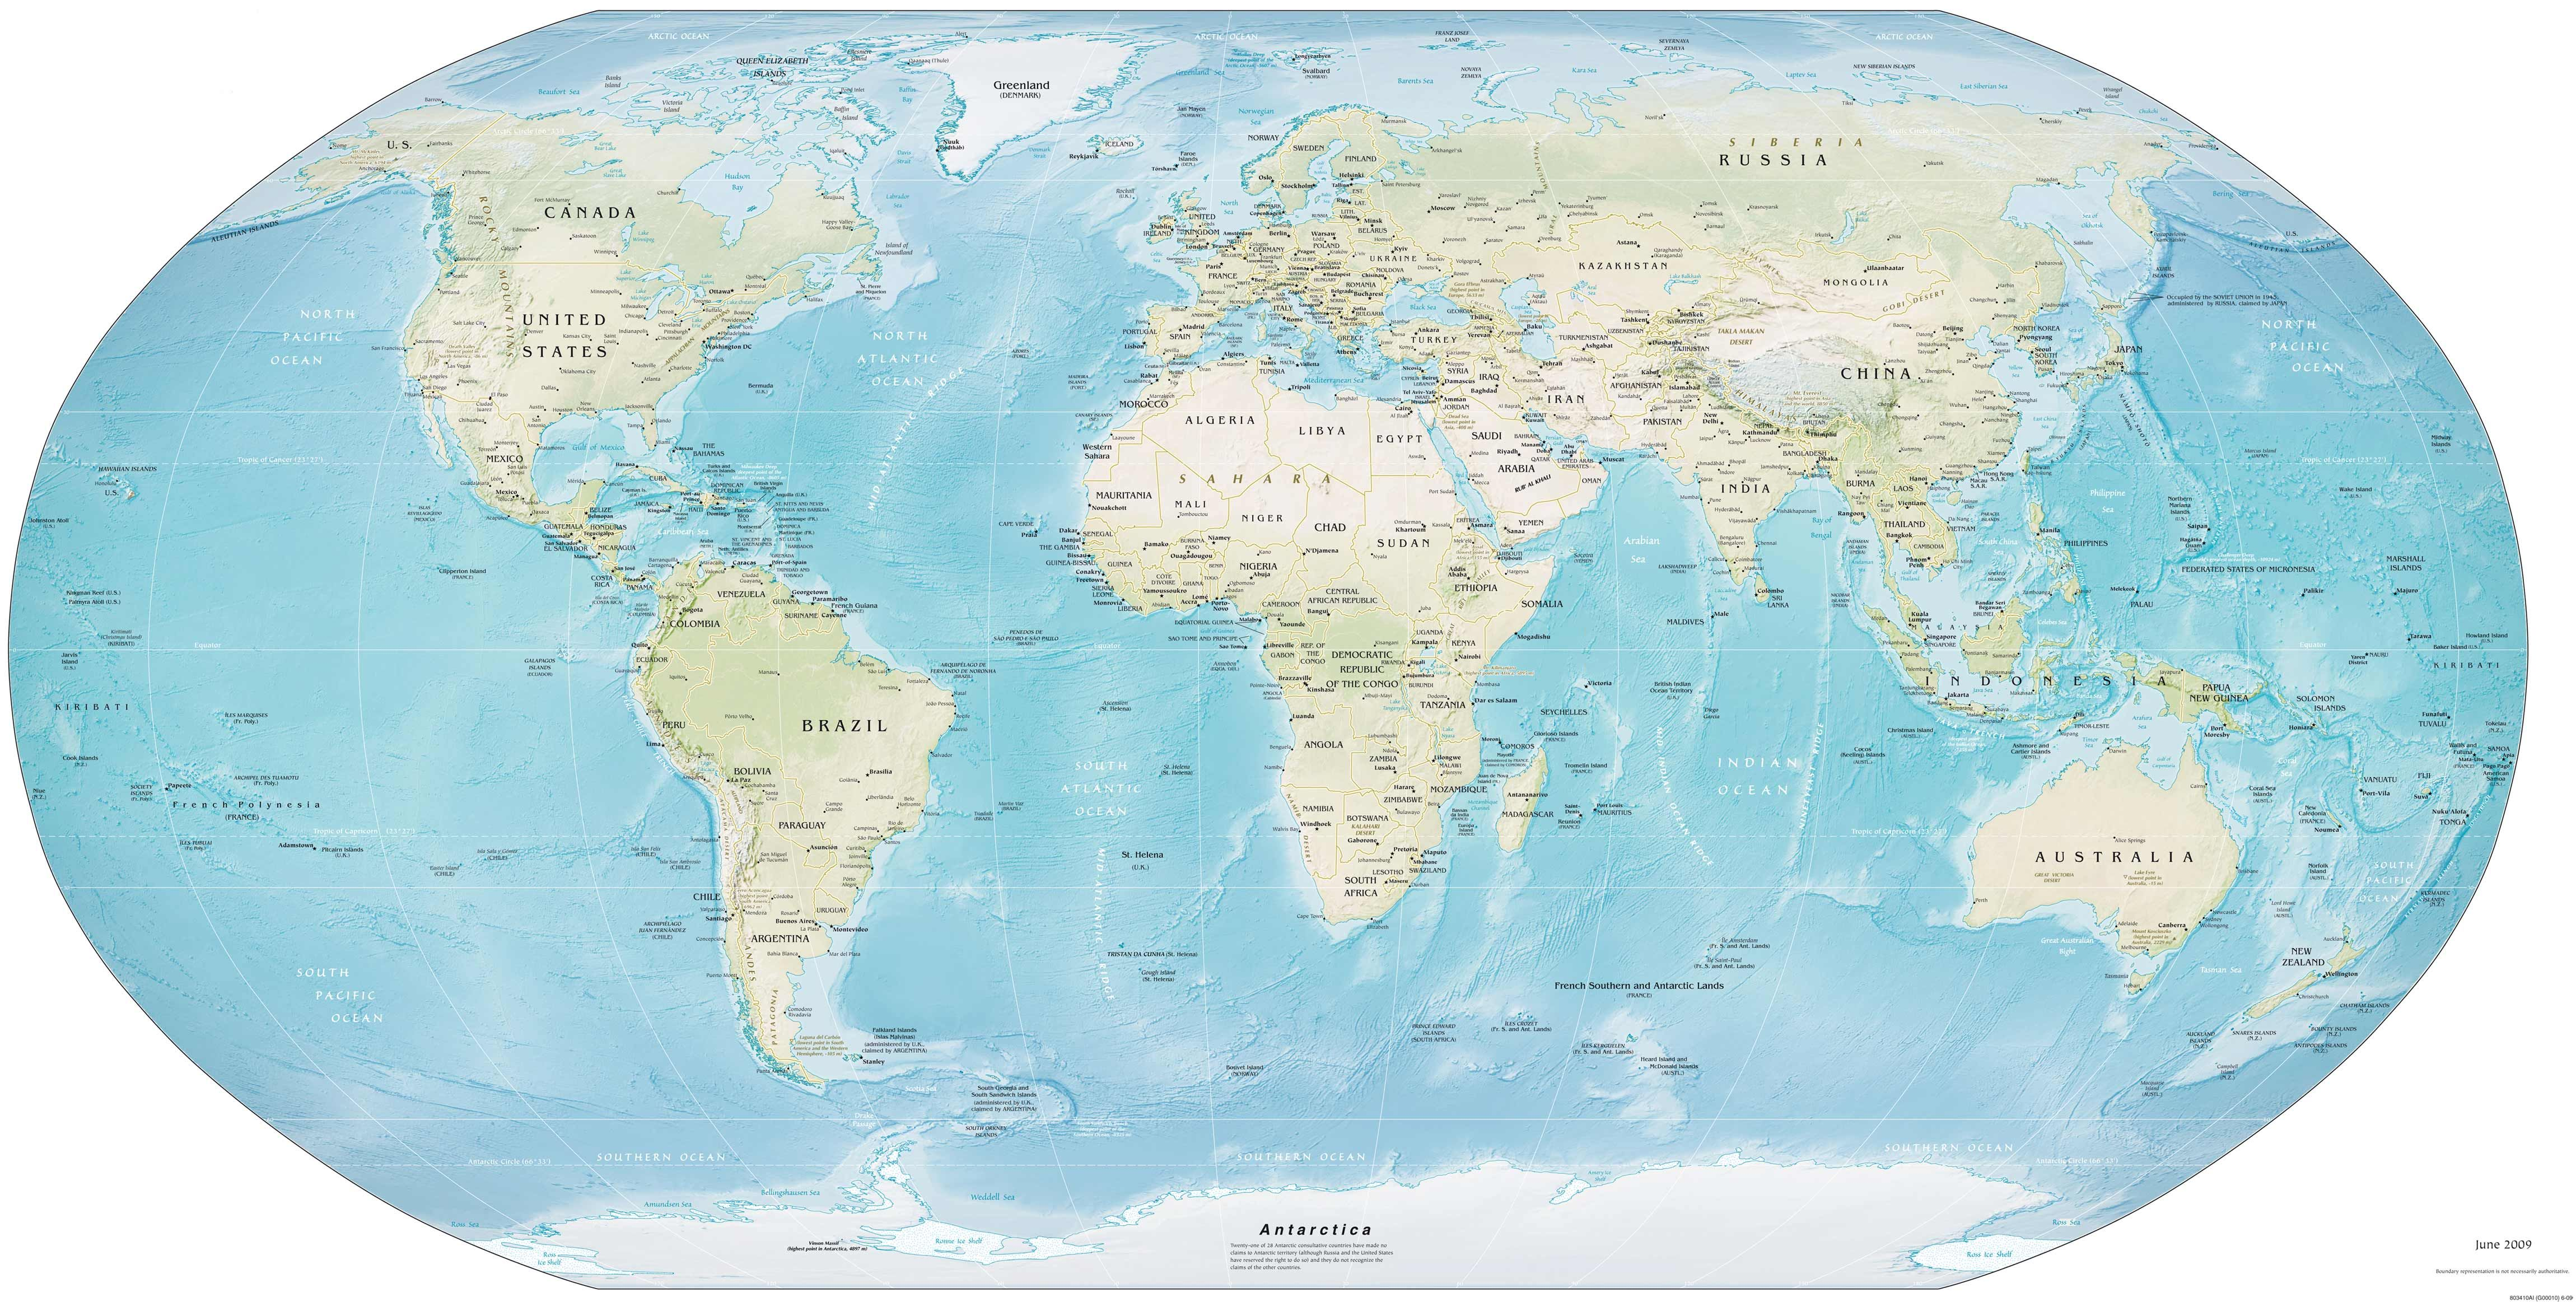 Awesome zoomable world map Detailed world map, World map